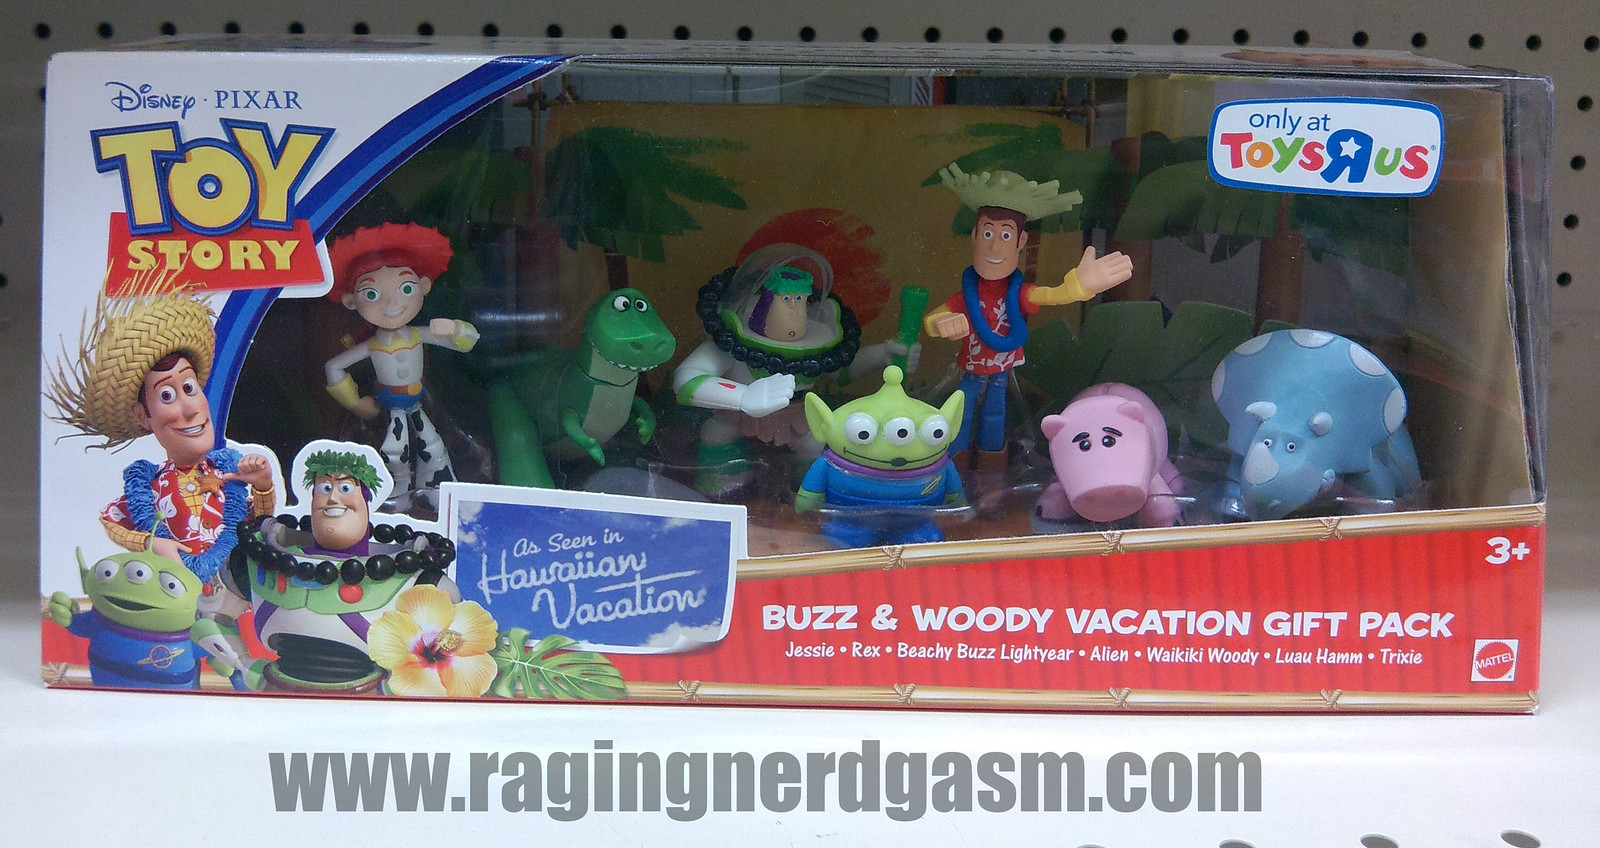 Pixar's Toy story Figurine Gift sets Buzz & woody vaction gift pack_01